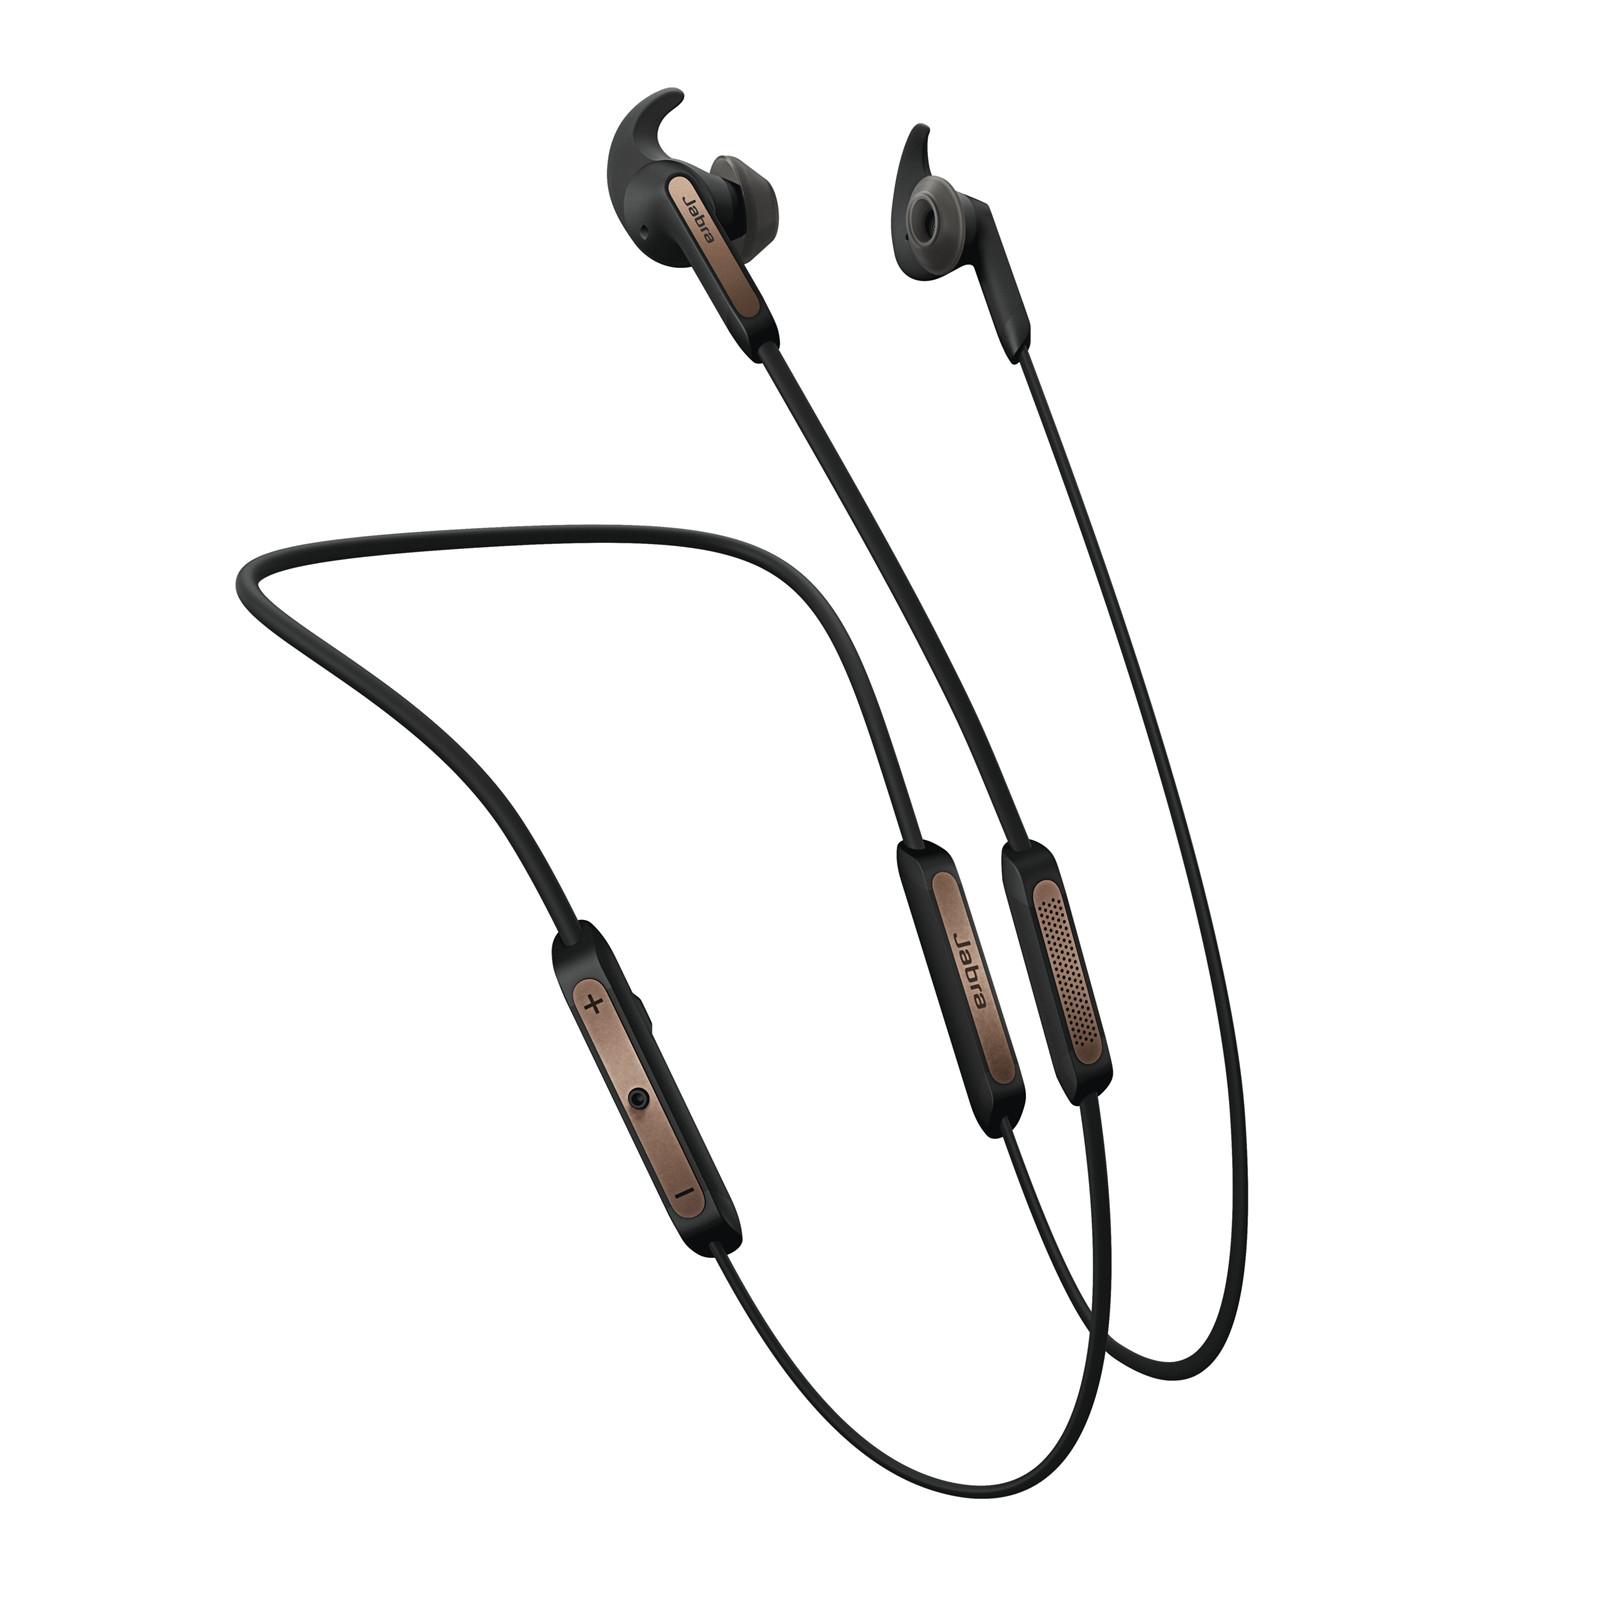 8f2974ad94e Jabra Elite 45e (Copper Black) Wireless Headphones for calls and music,  Crystal-clear sounds, adjustable equalizer and flexible memory wire  neckband.